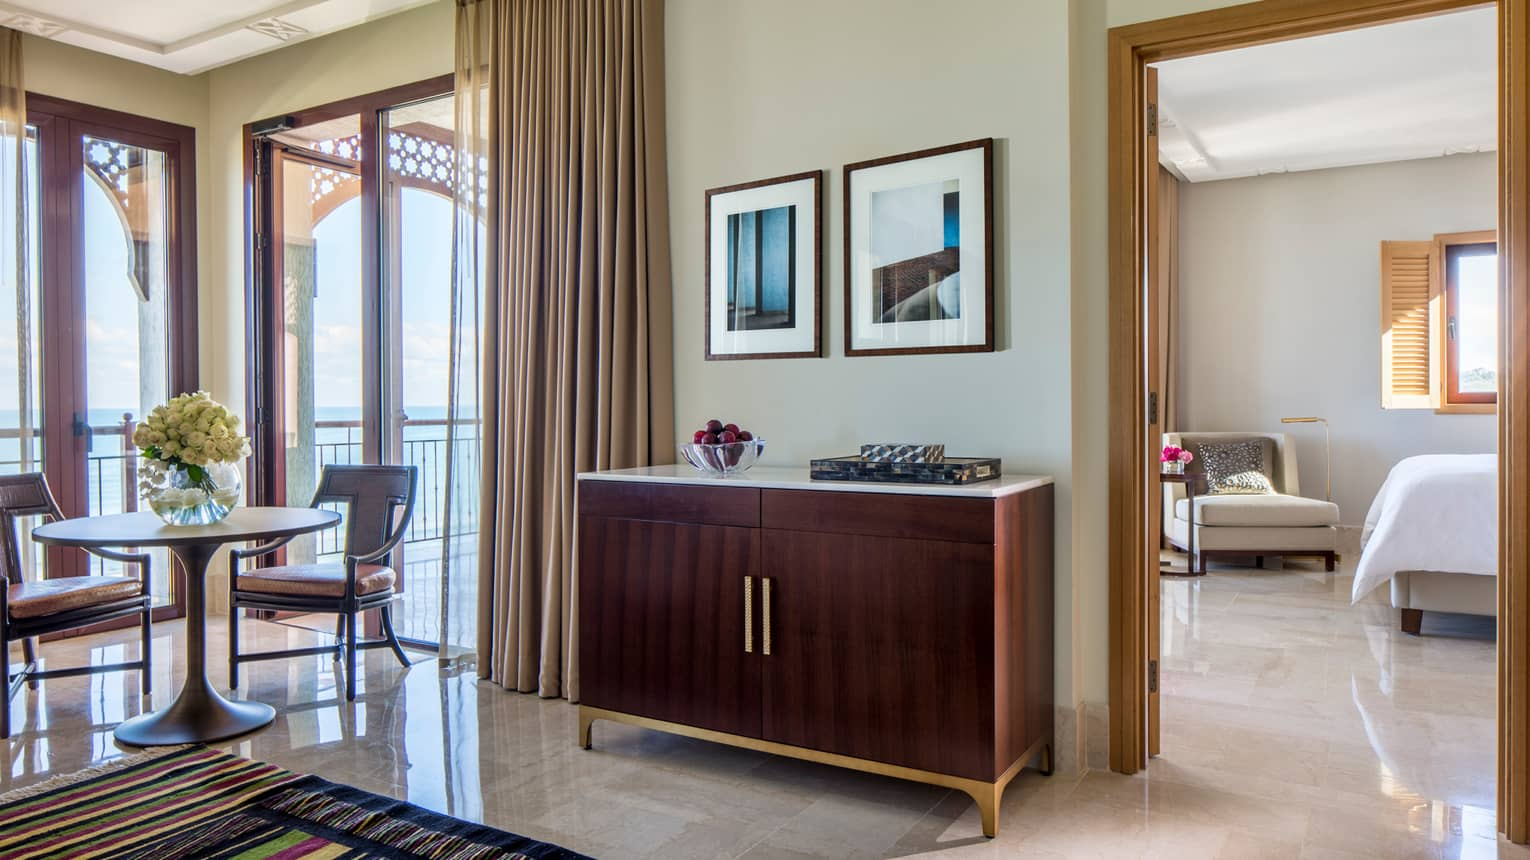 Four Seasons Sea-View Suite wood vanity with bowl of plums, small dining table by sunny window